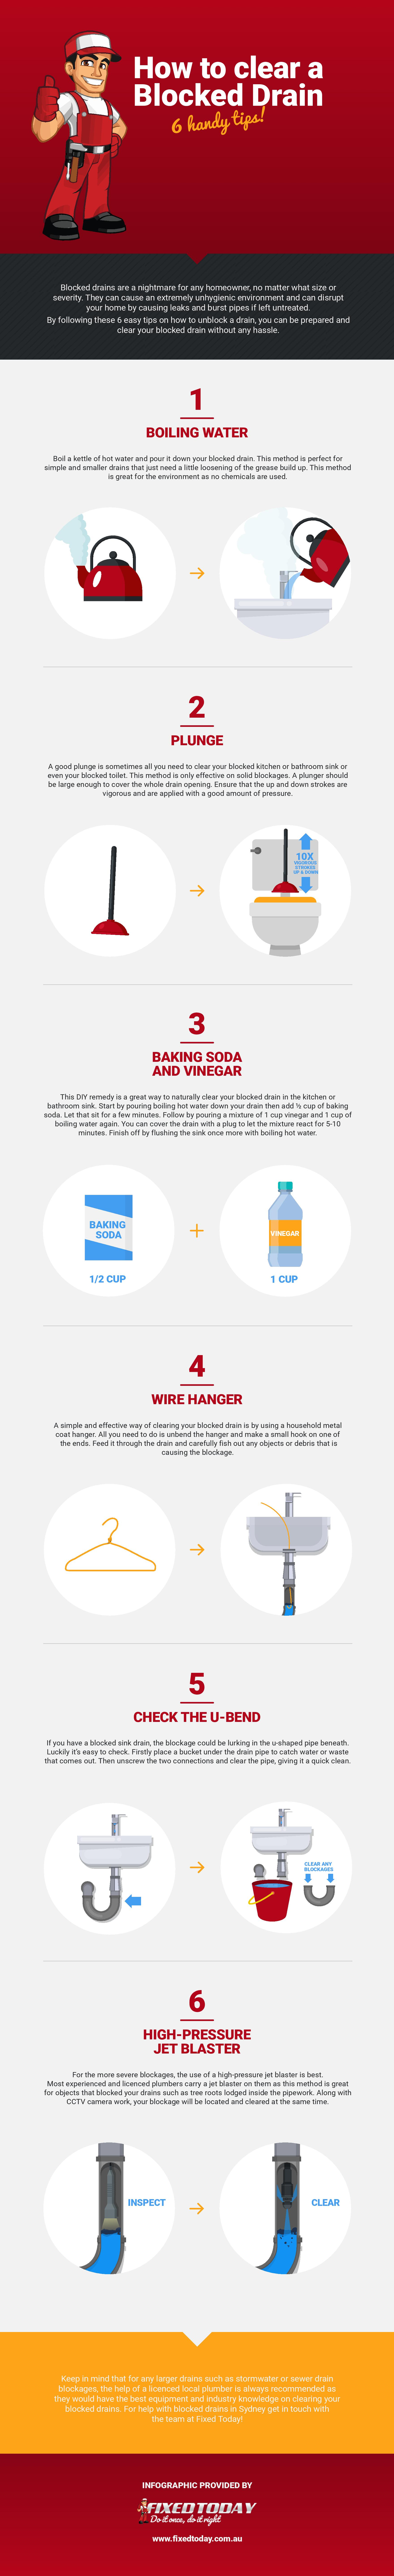 How-to-Unblock-a-Drain-Infographic